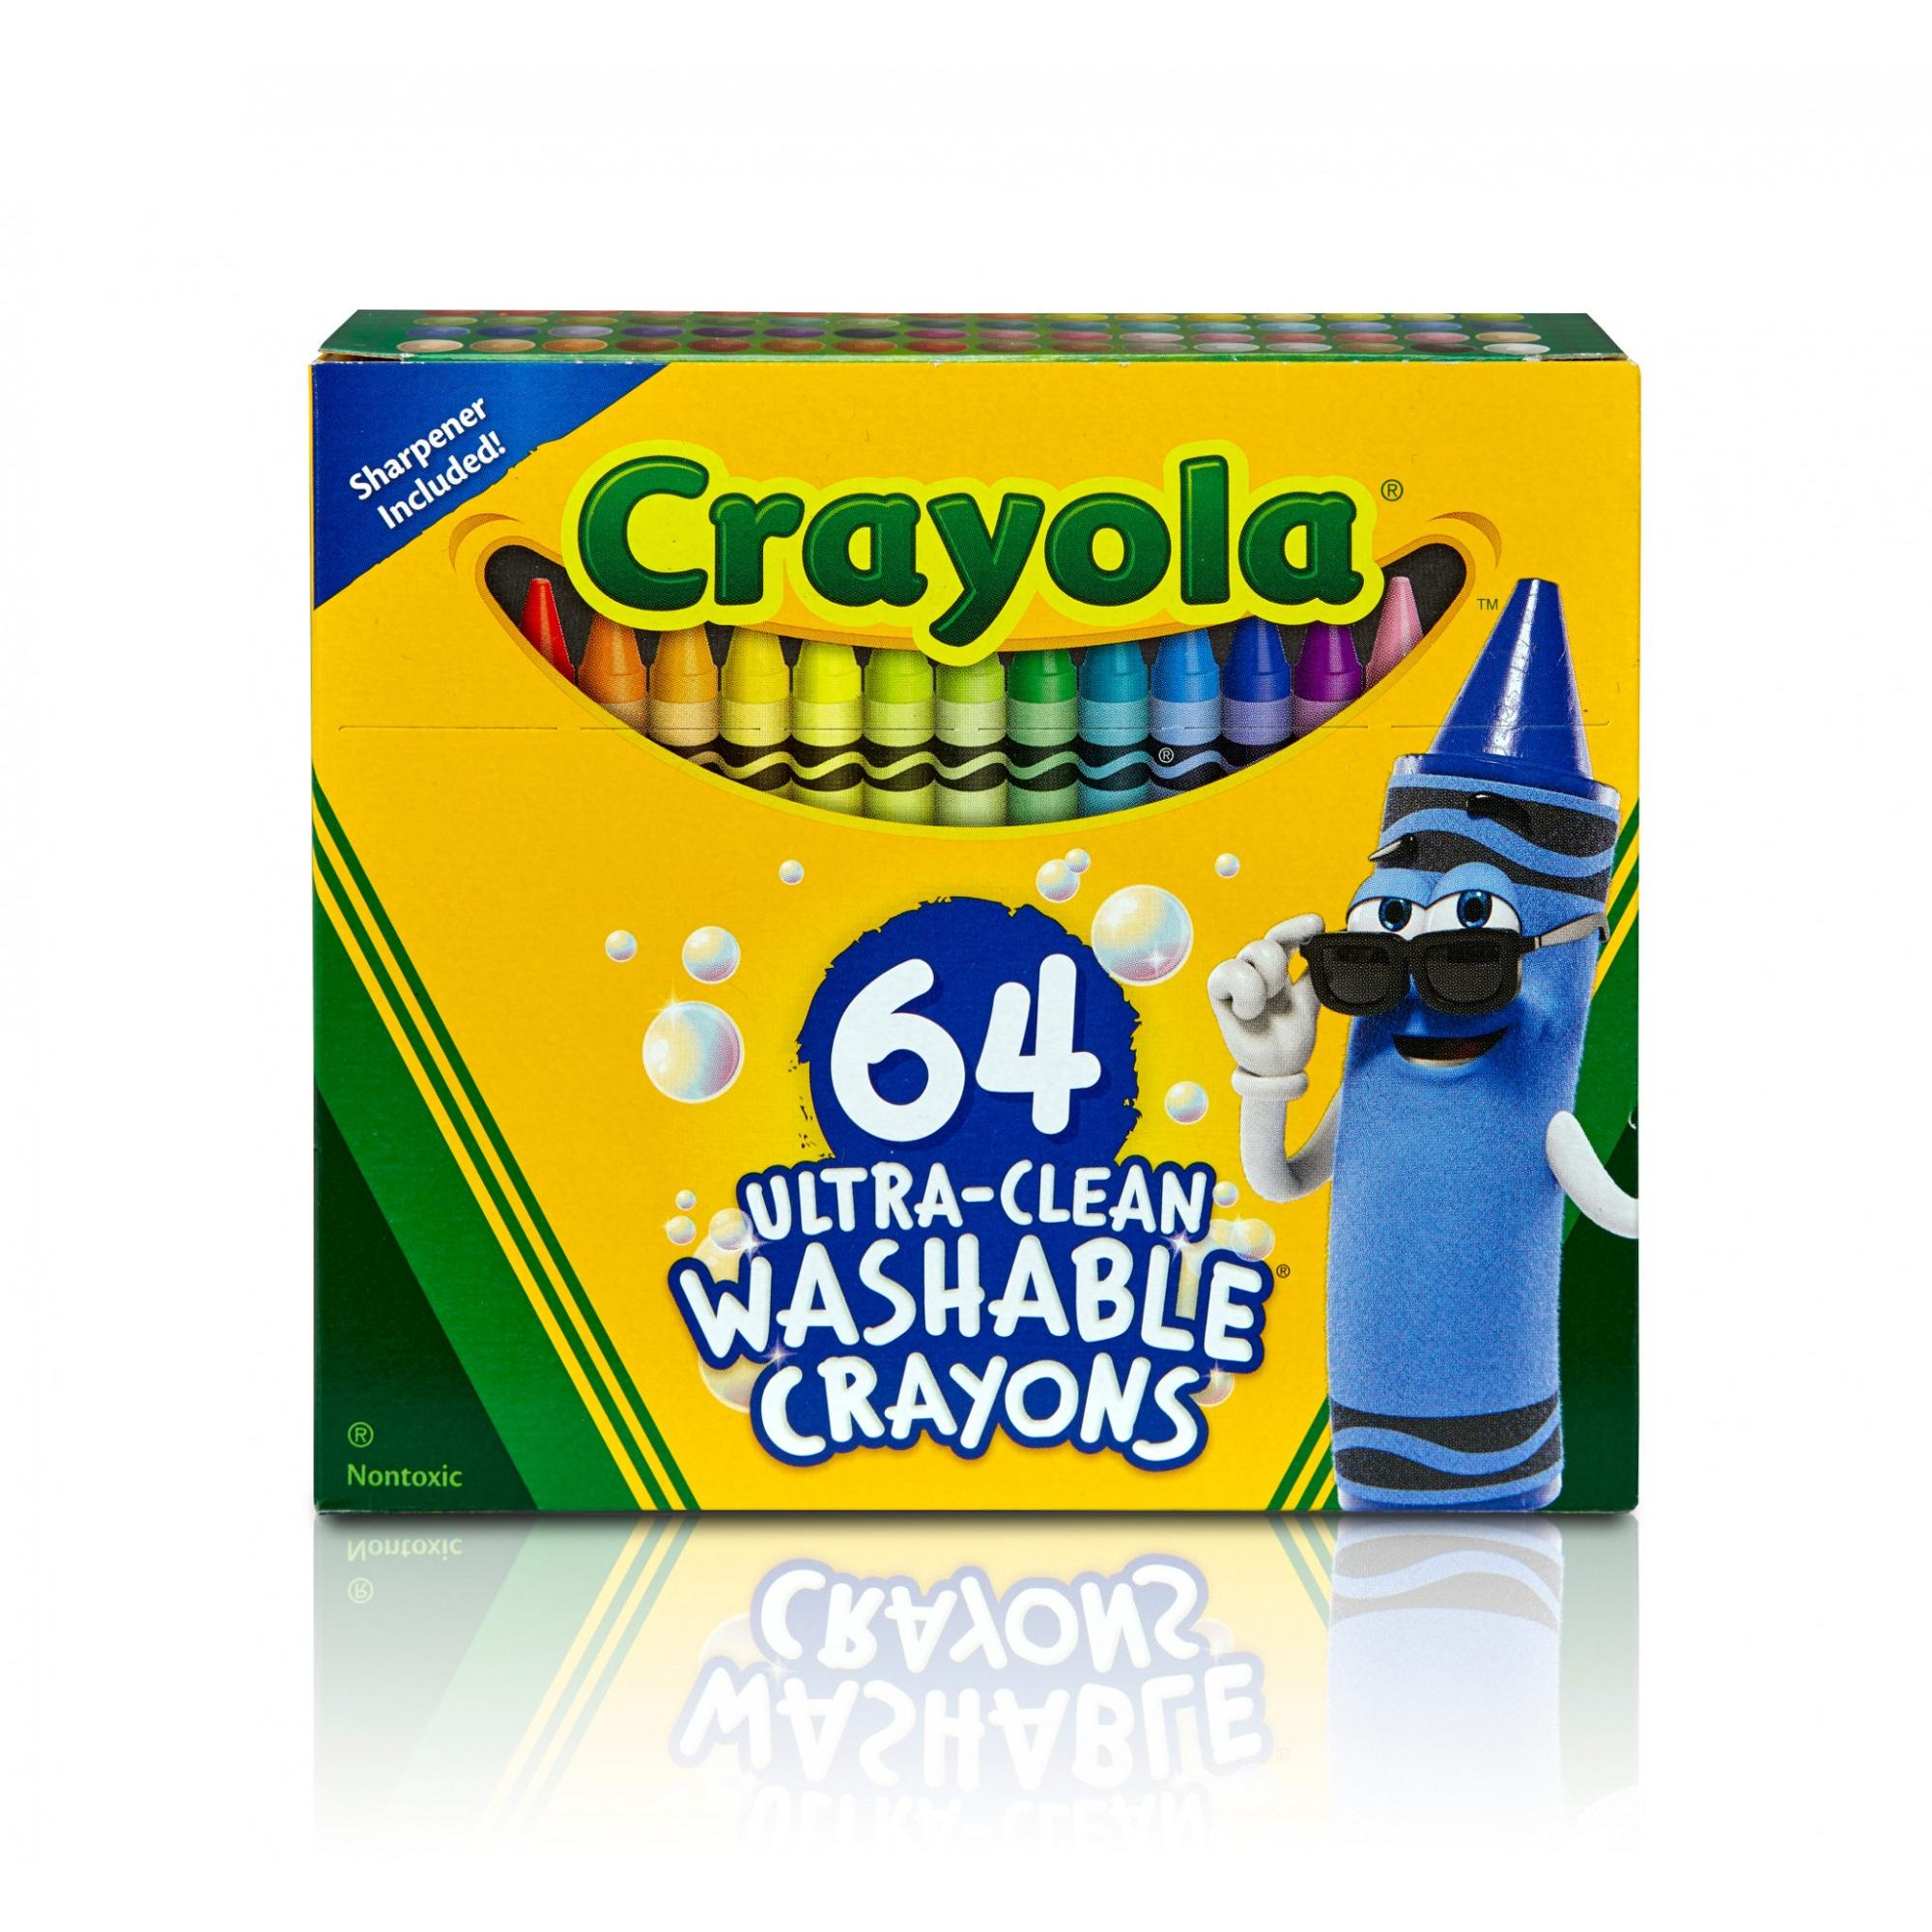 Crayola Ultra Clean Washable Crayons With Sharpener, Bulk Crayons, Great For Coloring Books, 64 Count